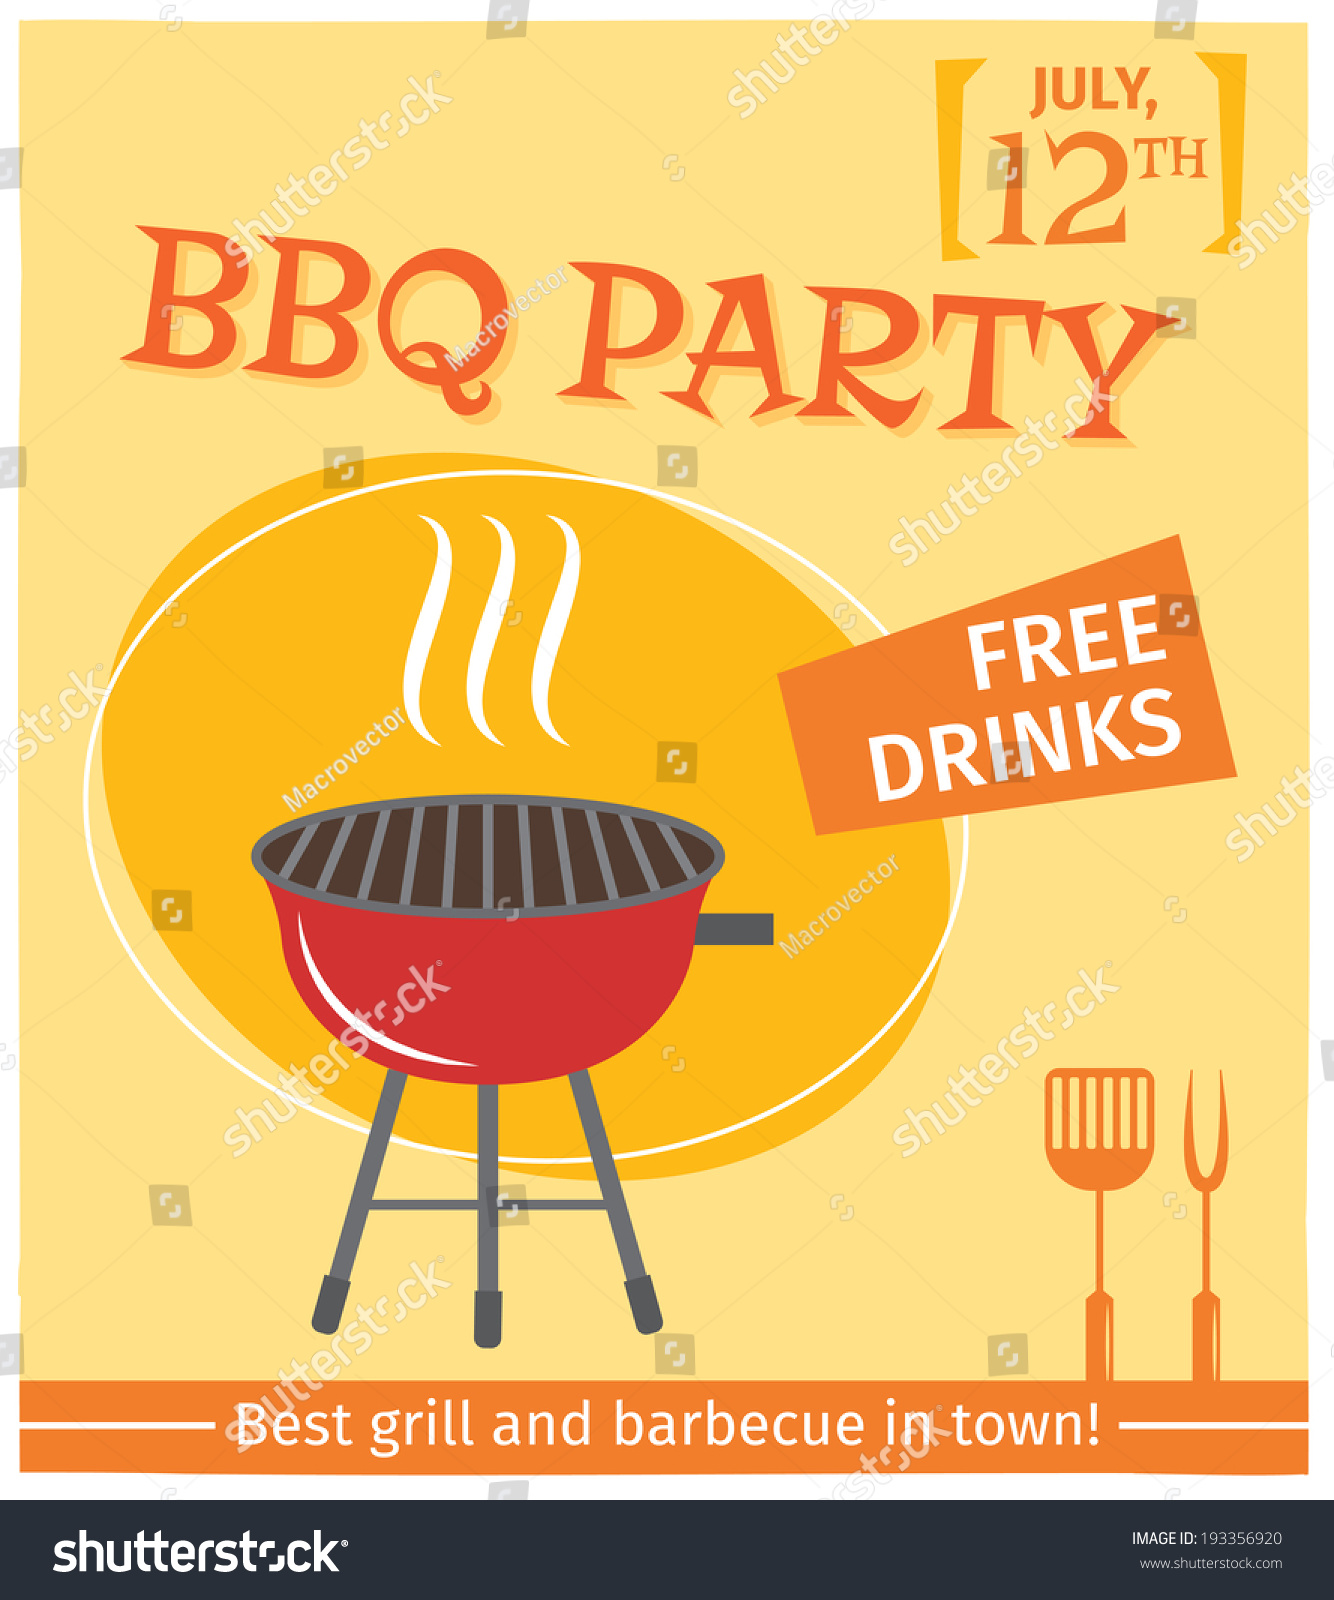 bbq grill party best town flyer のベクター画像素材 ロイヤリティ